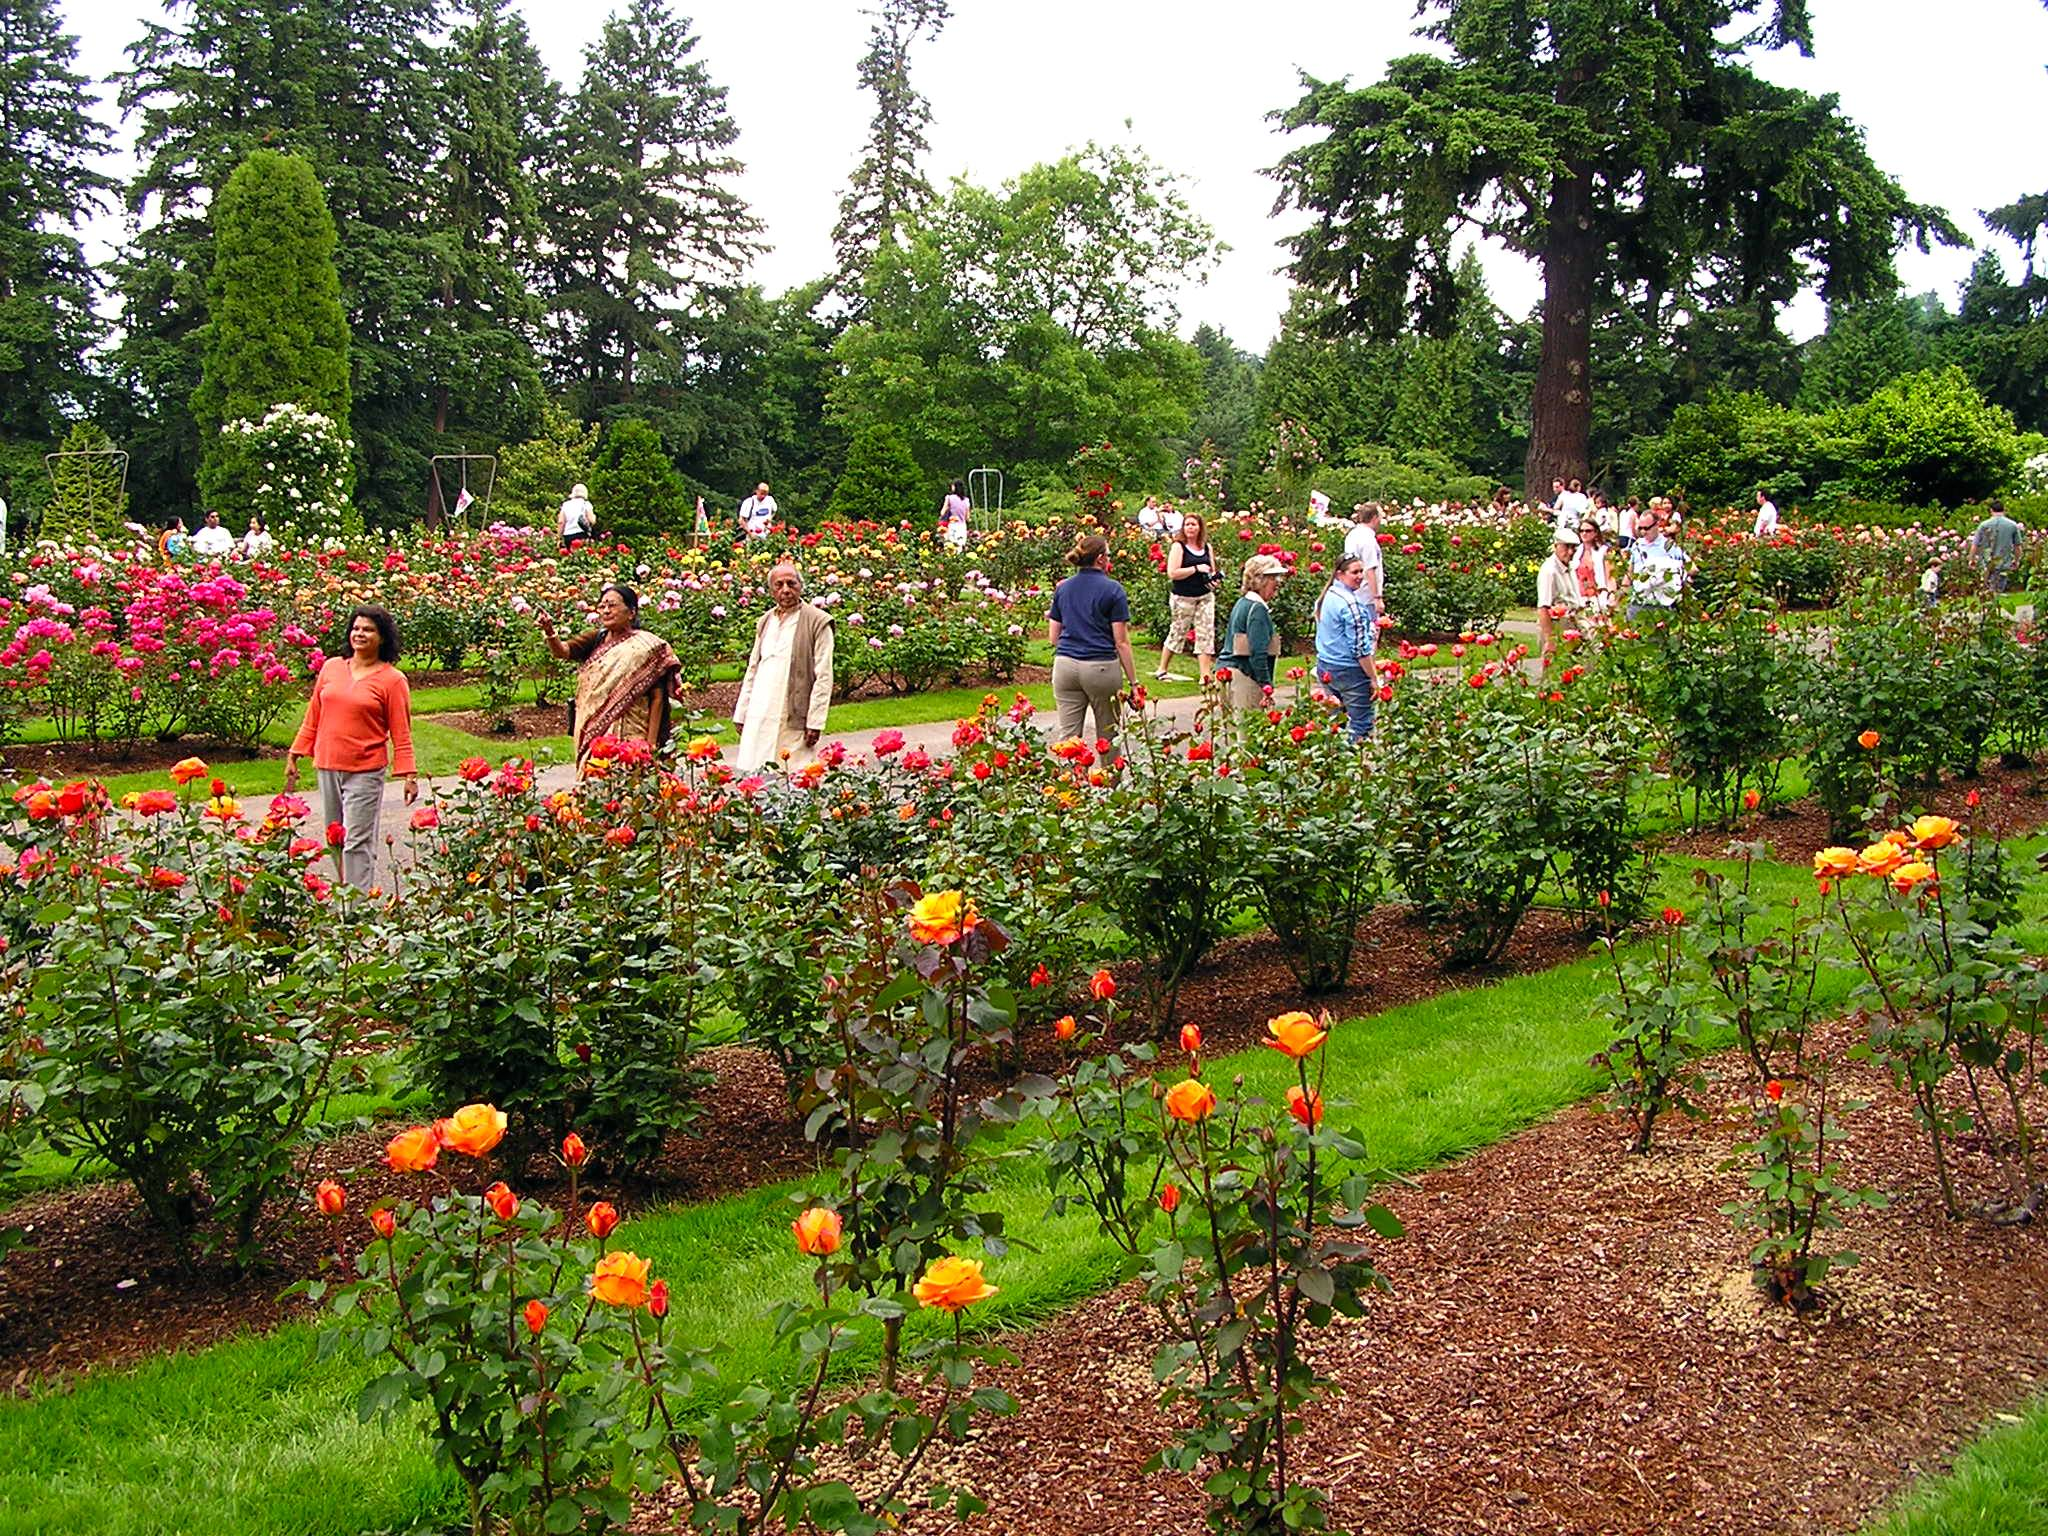 In early 1918, the International Rose Test Garden in Portland, Ore., began receiving plants from growers in England and Ireland, as well as Los Angeles, Washington and the Eastern United States.